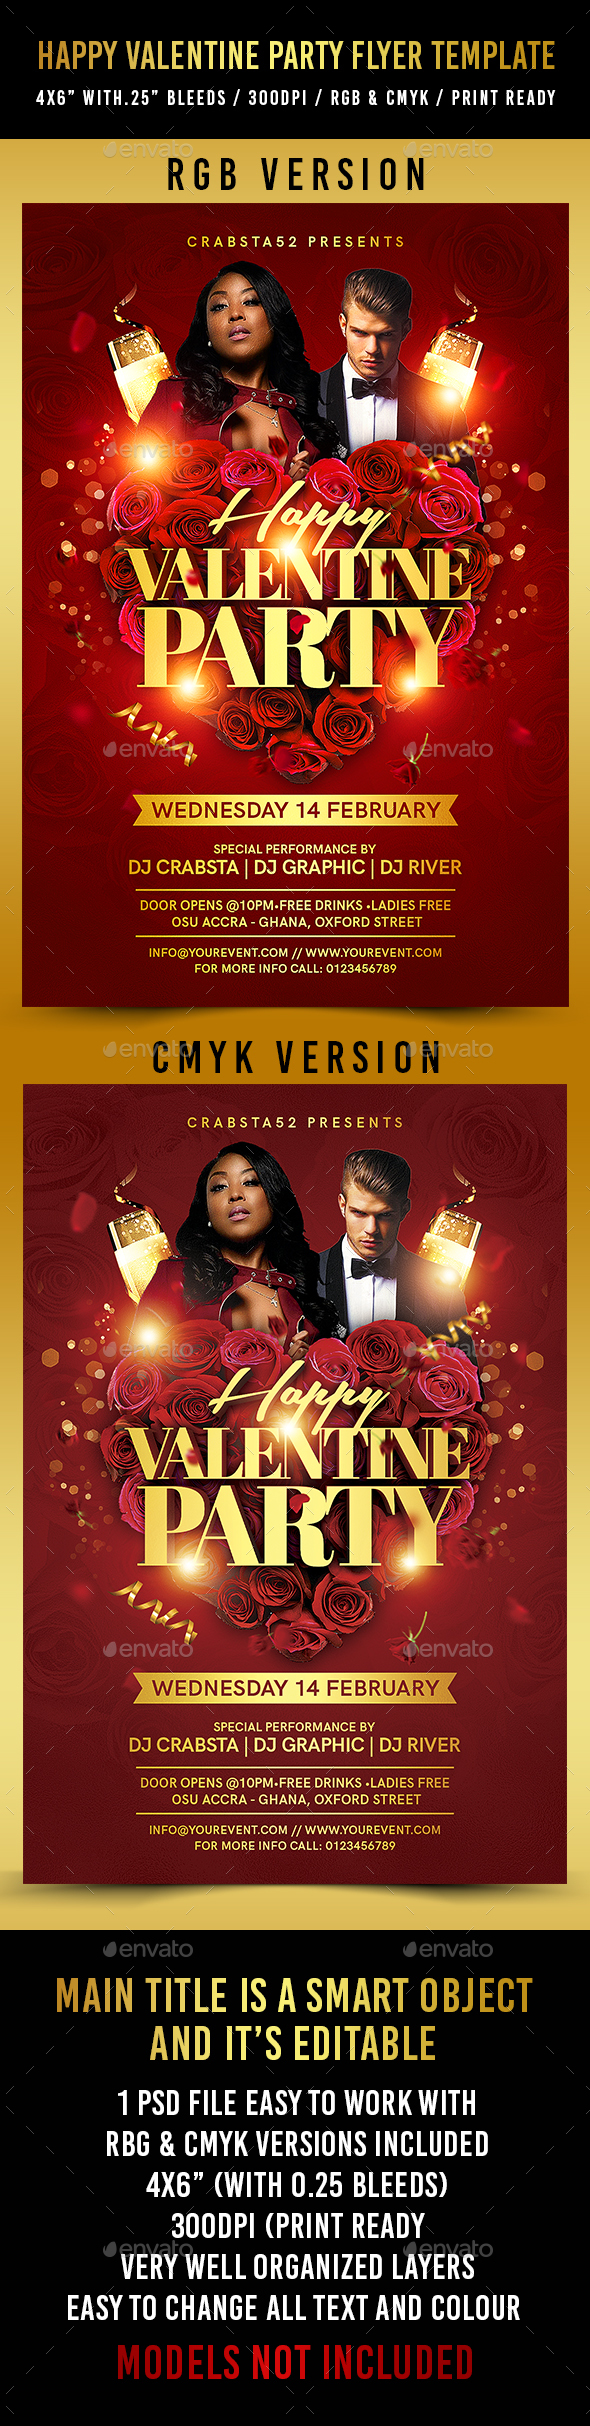 Happy Valentine Party Flyer Template - Flyers Print Templates